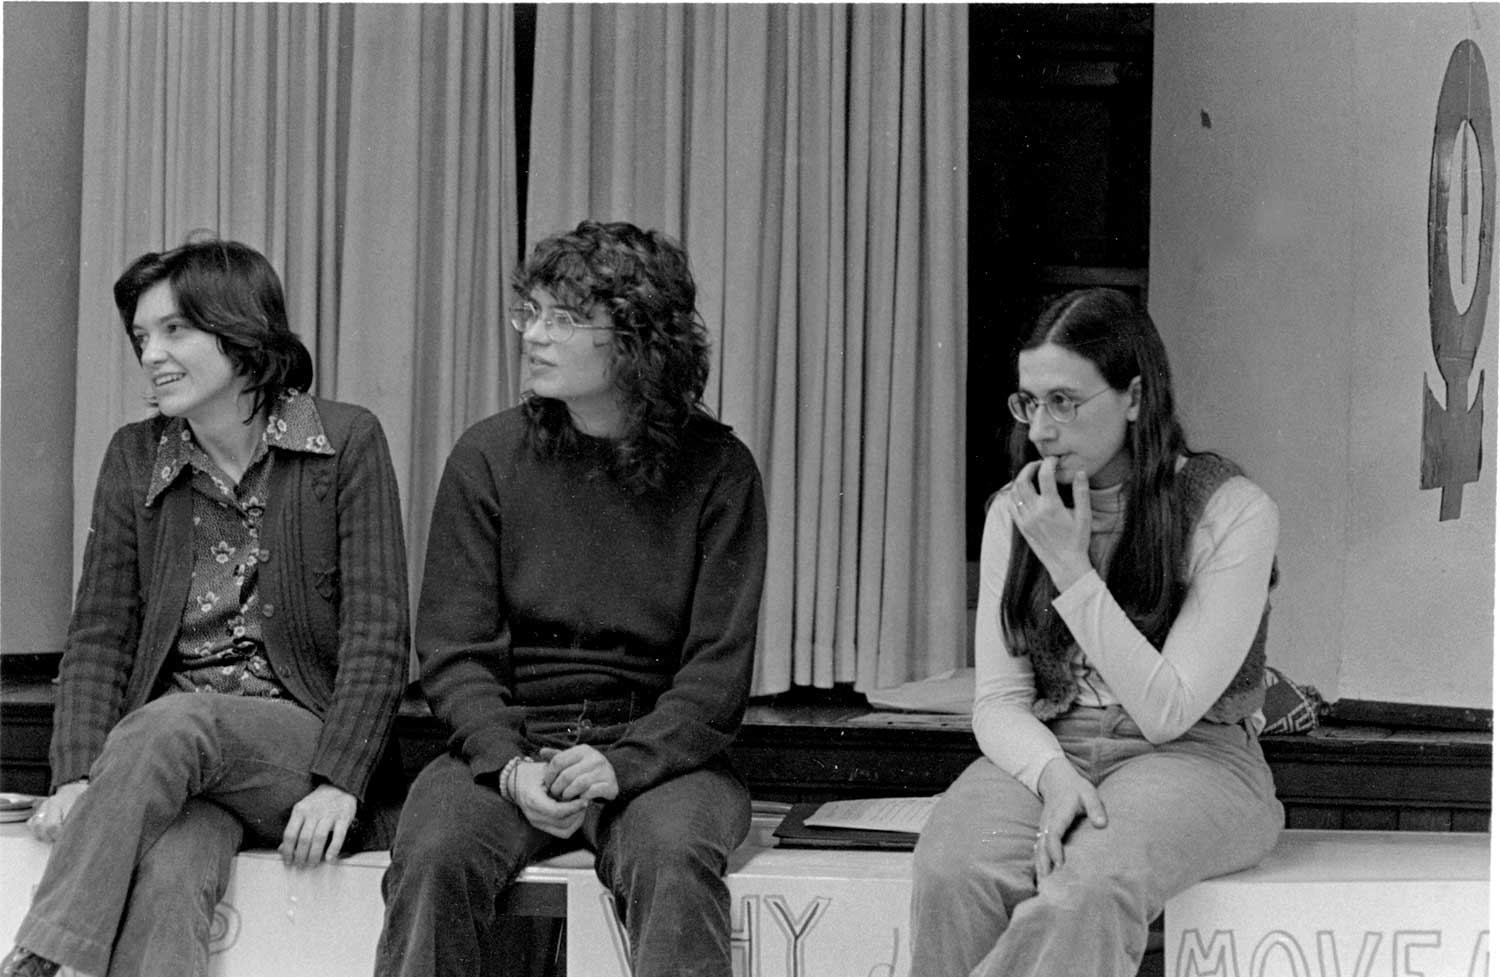 Barb, Mary Anne and Sarah, 1974